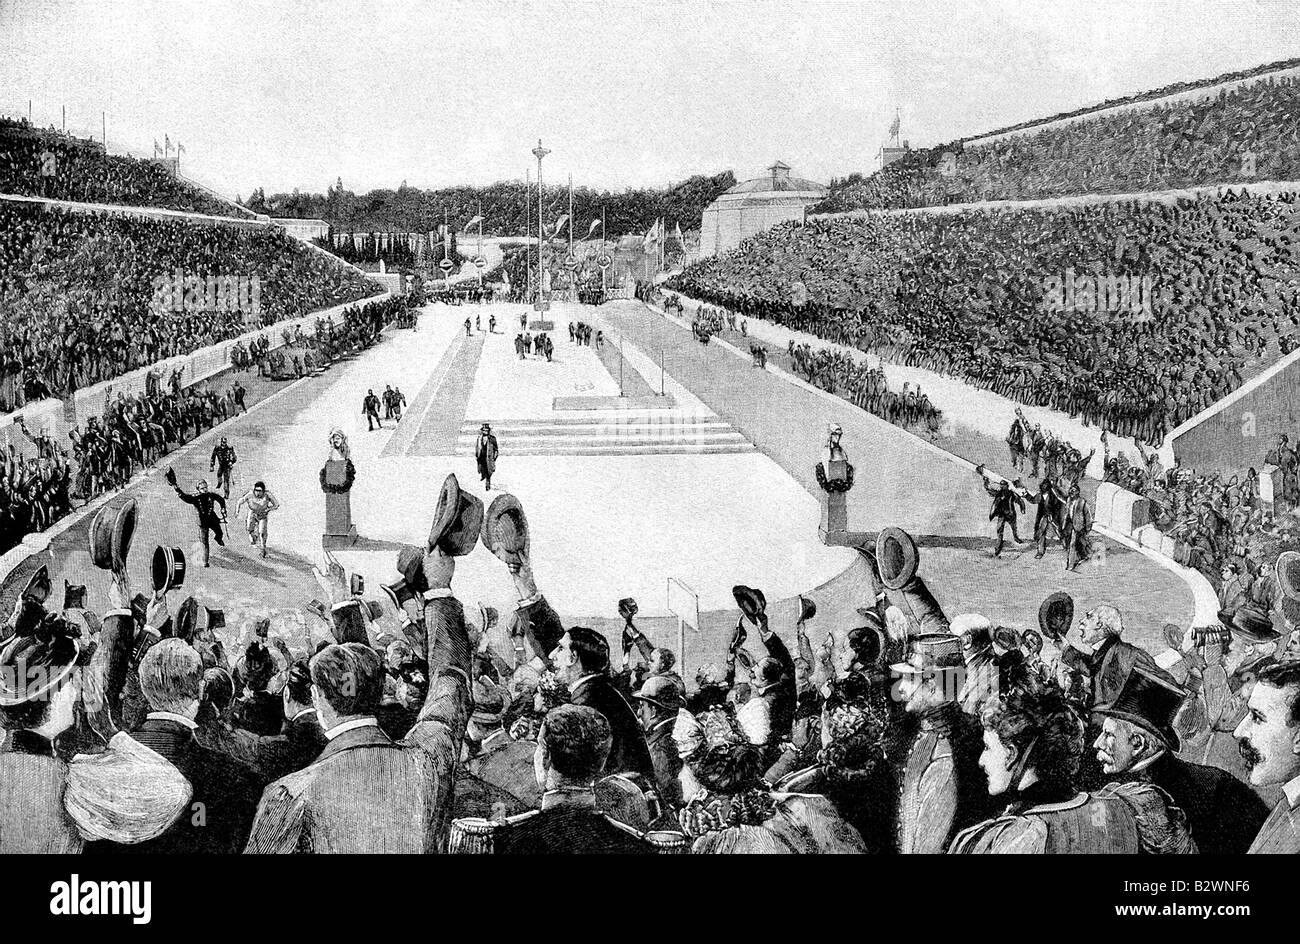 Revival of Olympic Games in 1896